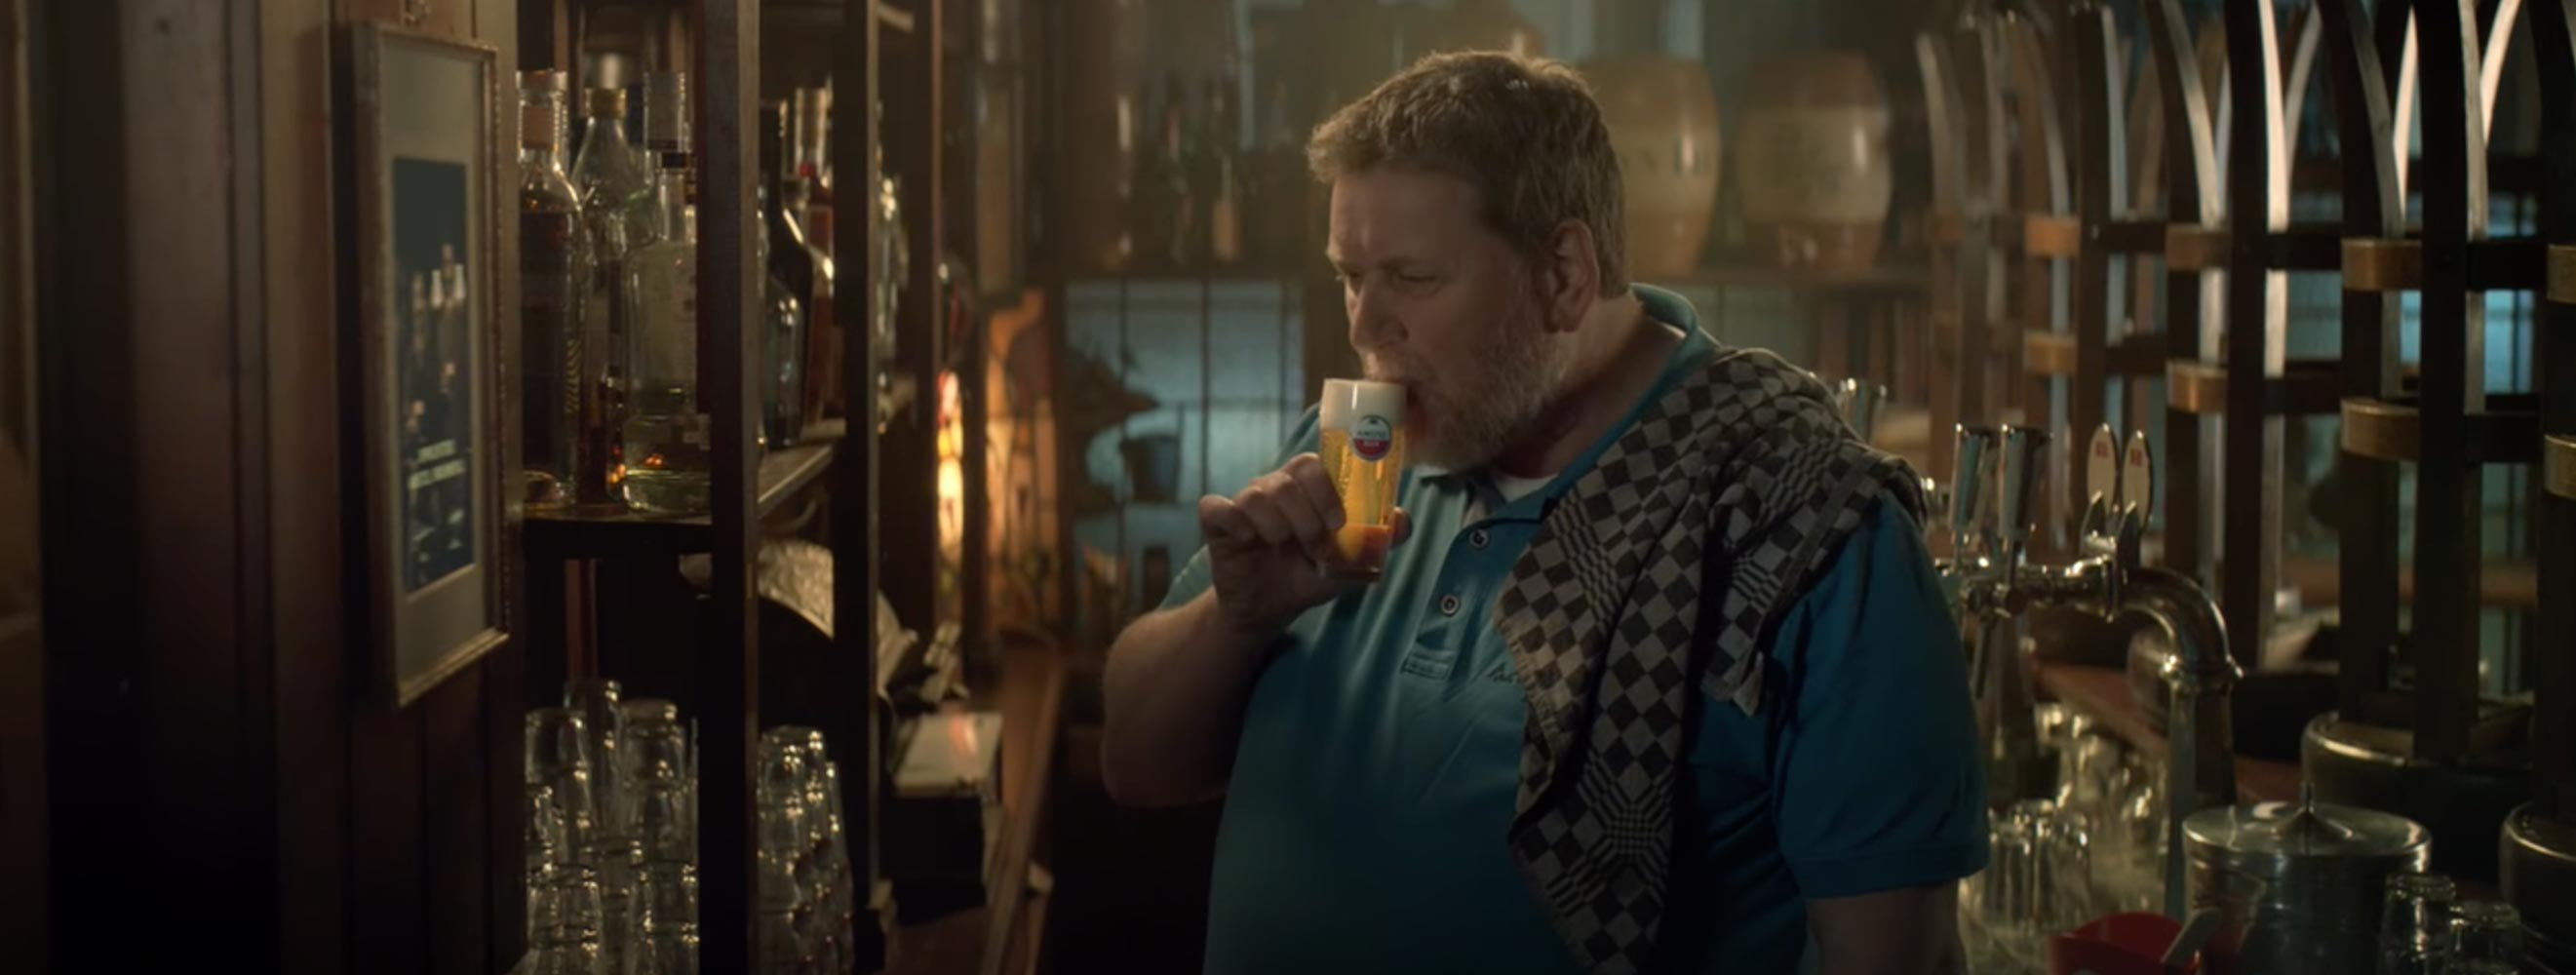 Neuromarketing Blog Amstel Reclame - neurons that fire together, wire together